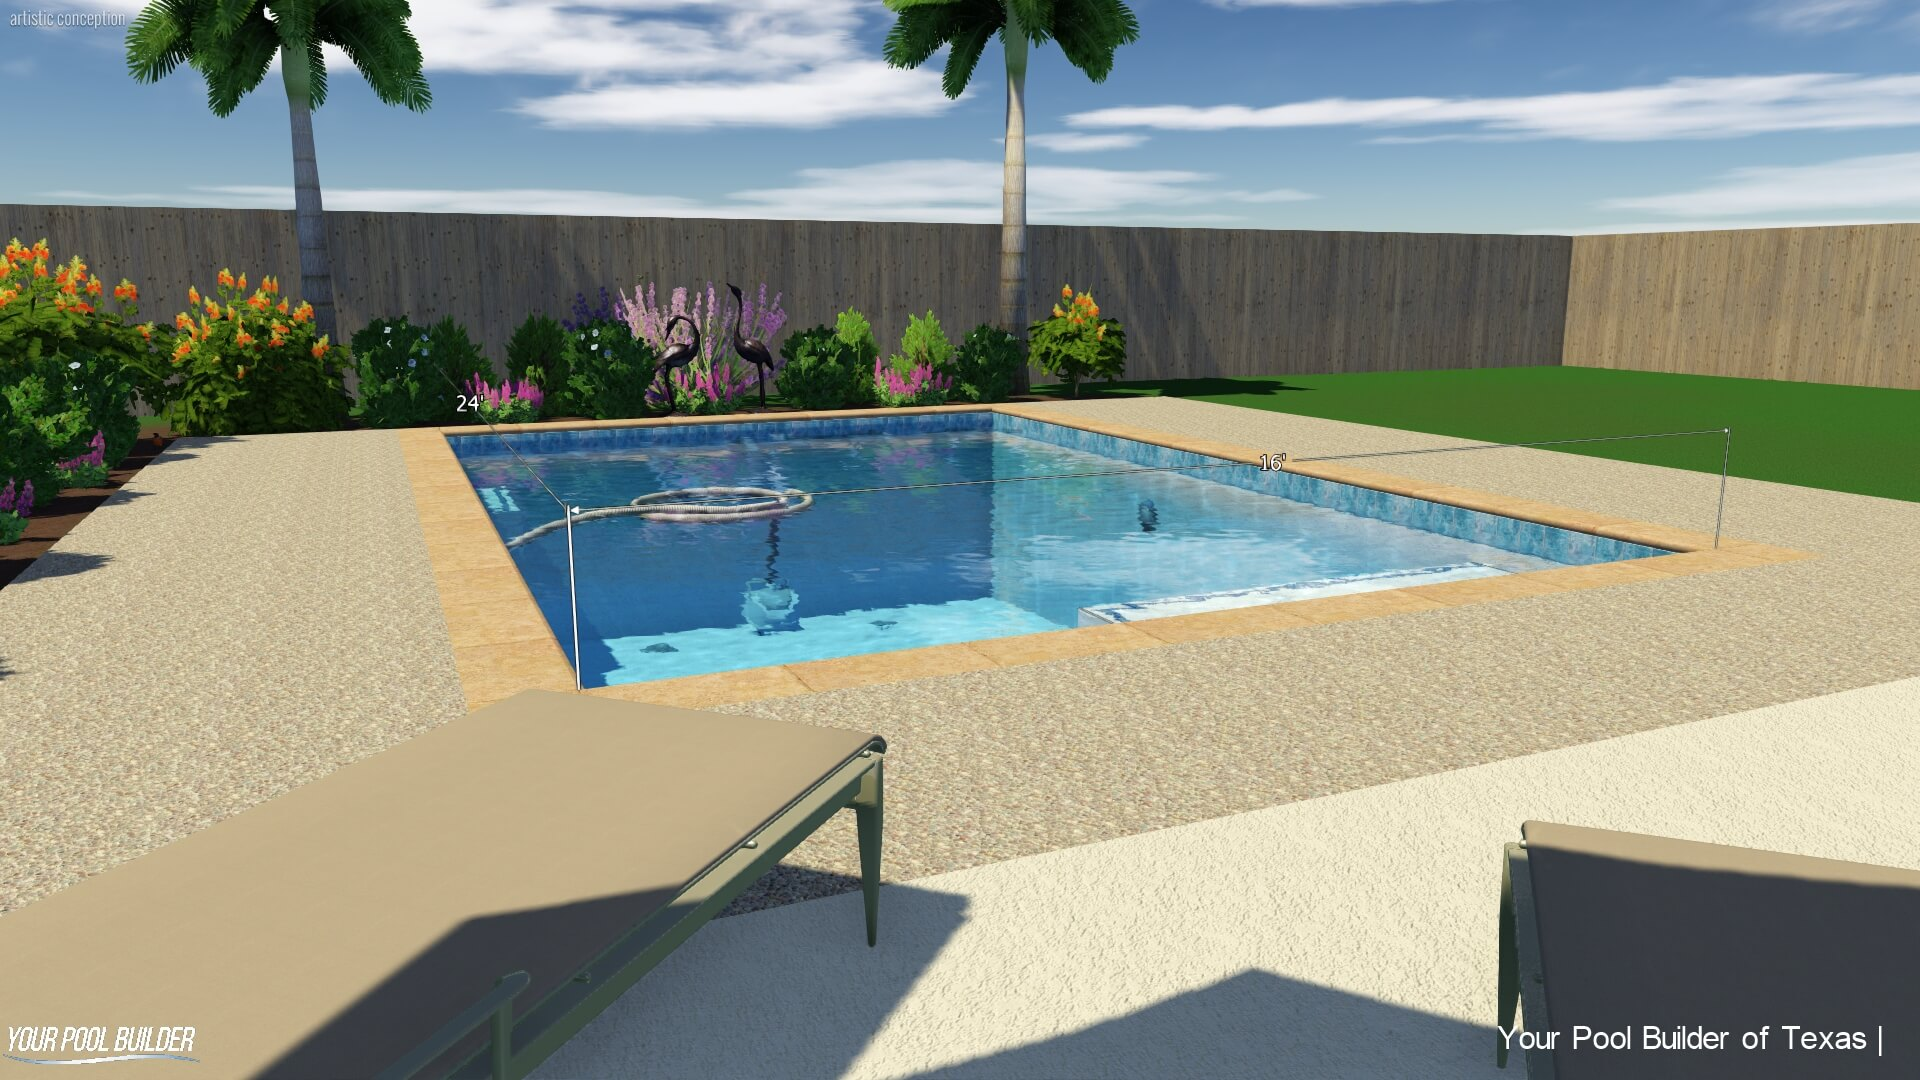 Inground Pool Prices Cost To Build Basic Swimming Pool (3)